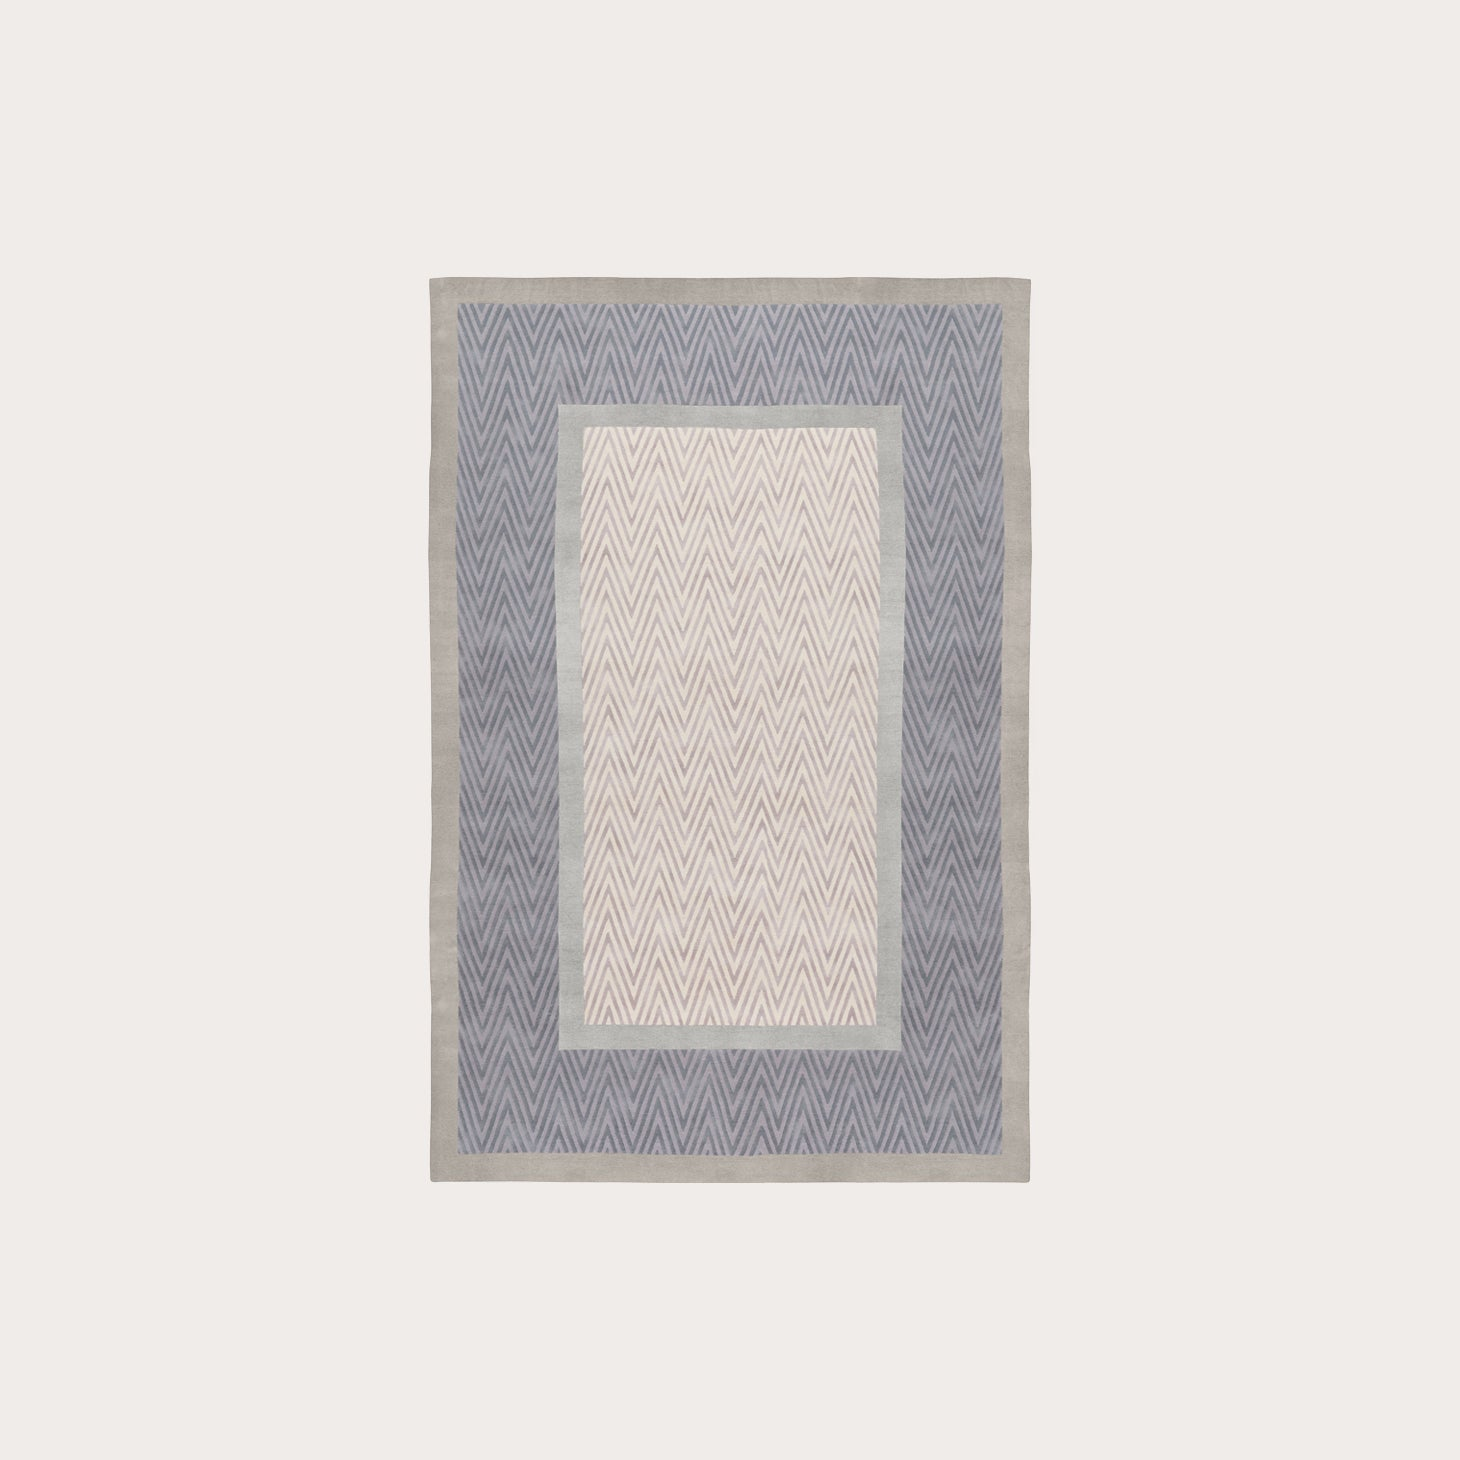 Herringbone Neutral Floor Coverings Jonathan Saunders Designer Furniture Sku: 391-150-11226